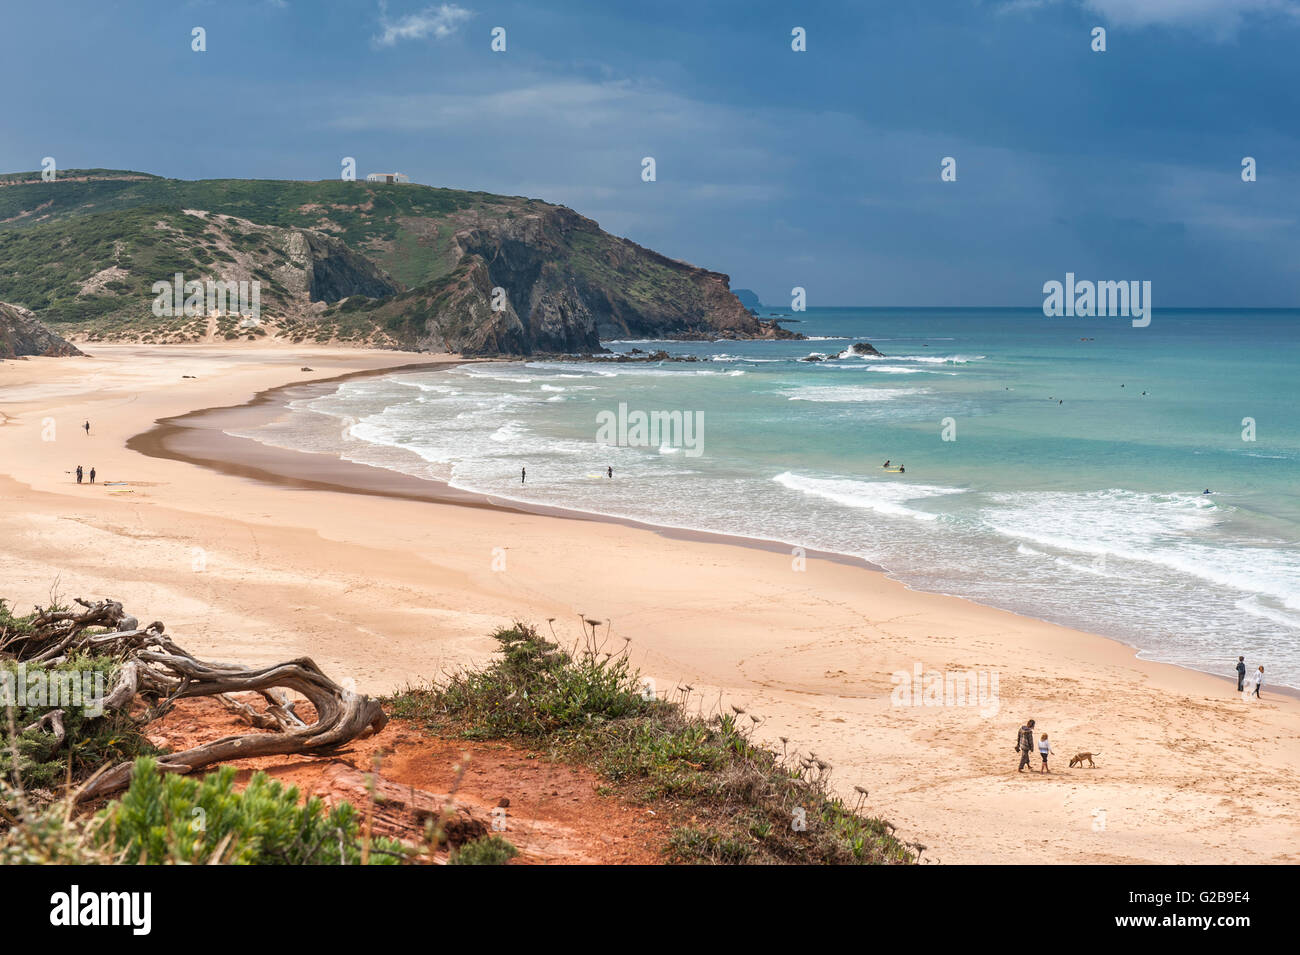 Praia do Amado on the west coast of Portugal. | This is